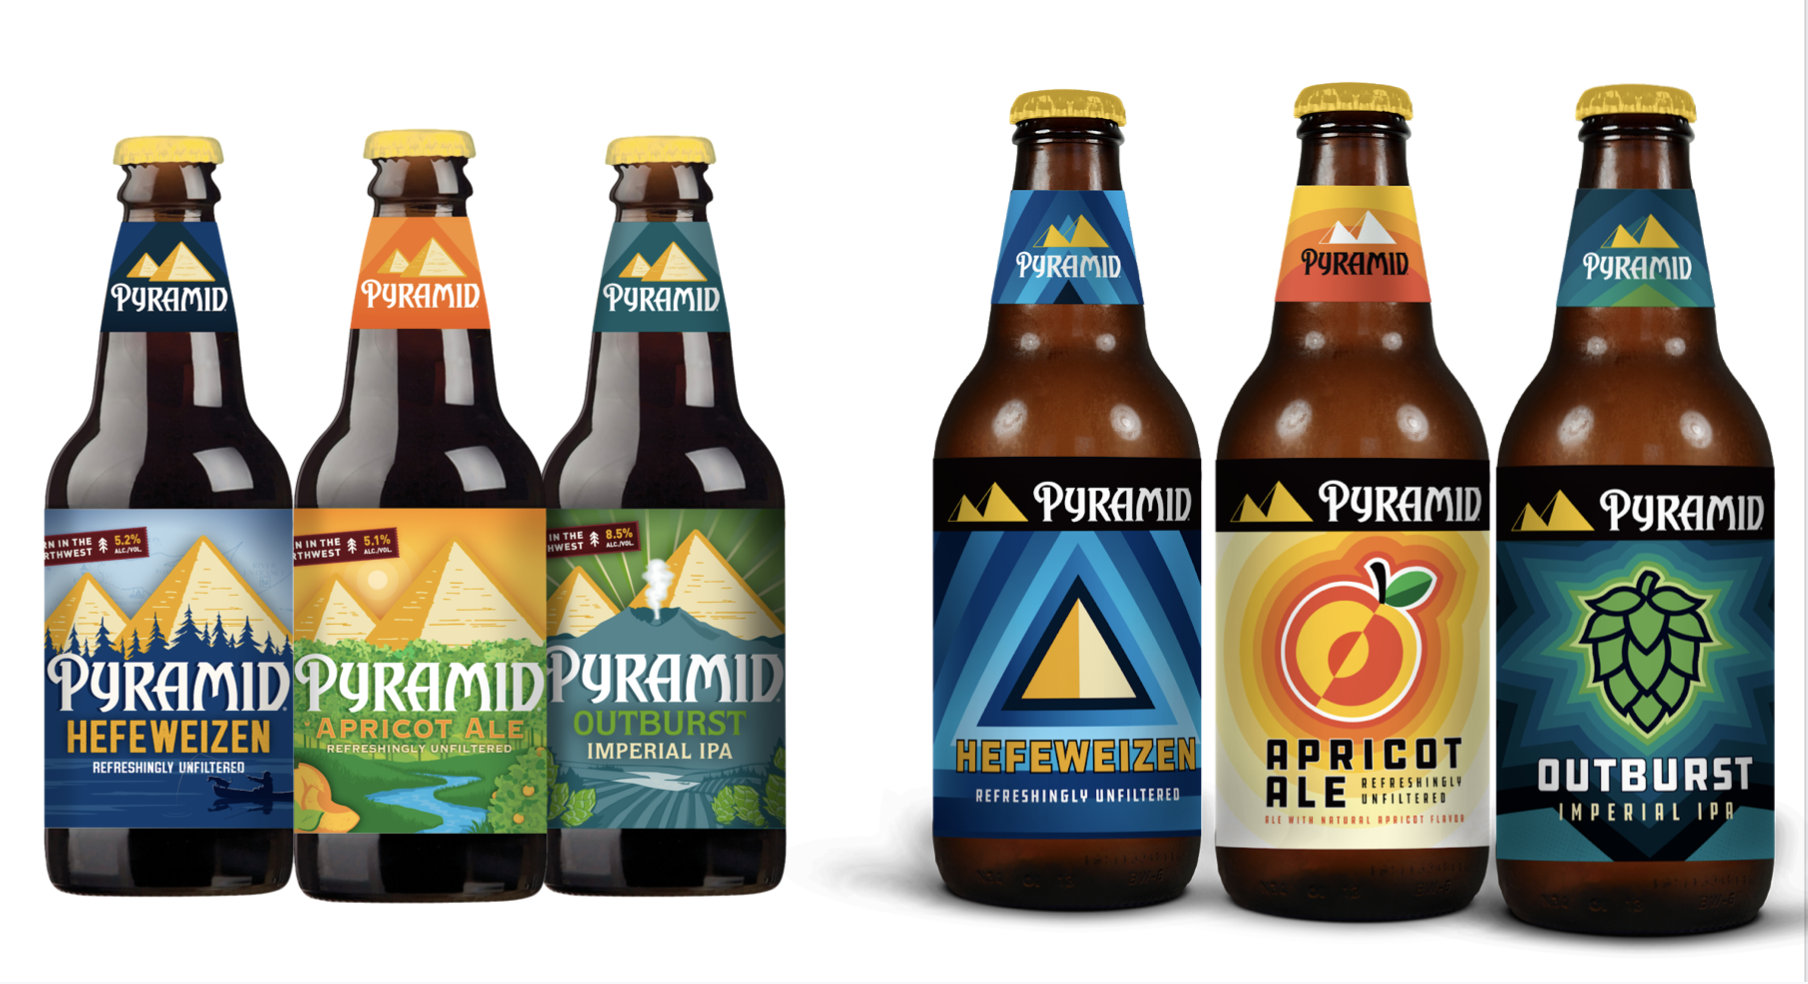 Former and Updated Pyramid Brewing 12oz bottle packaging of Hefeweizen, Apricot Ale, and Outburst Imperial IPA.